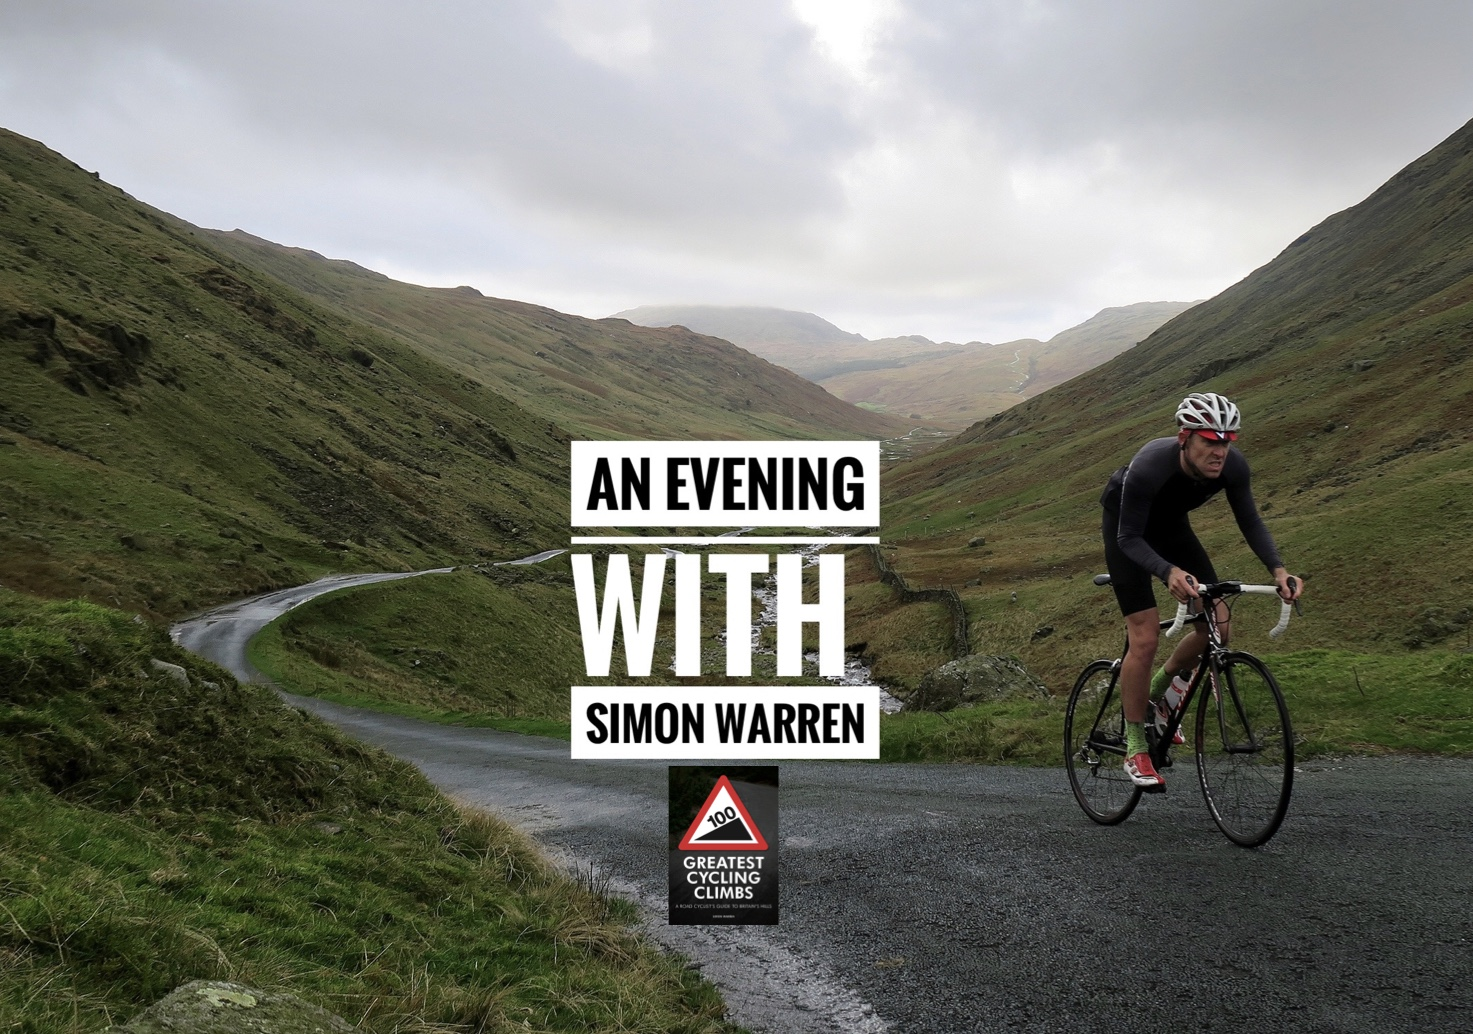 An evening with Simon Warren